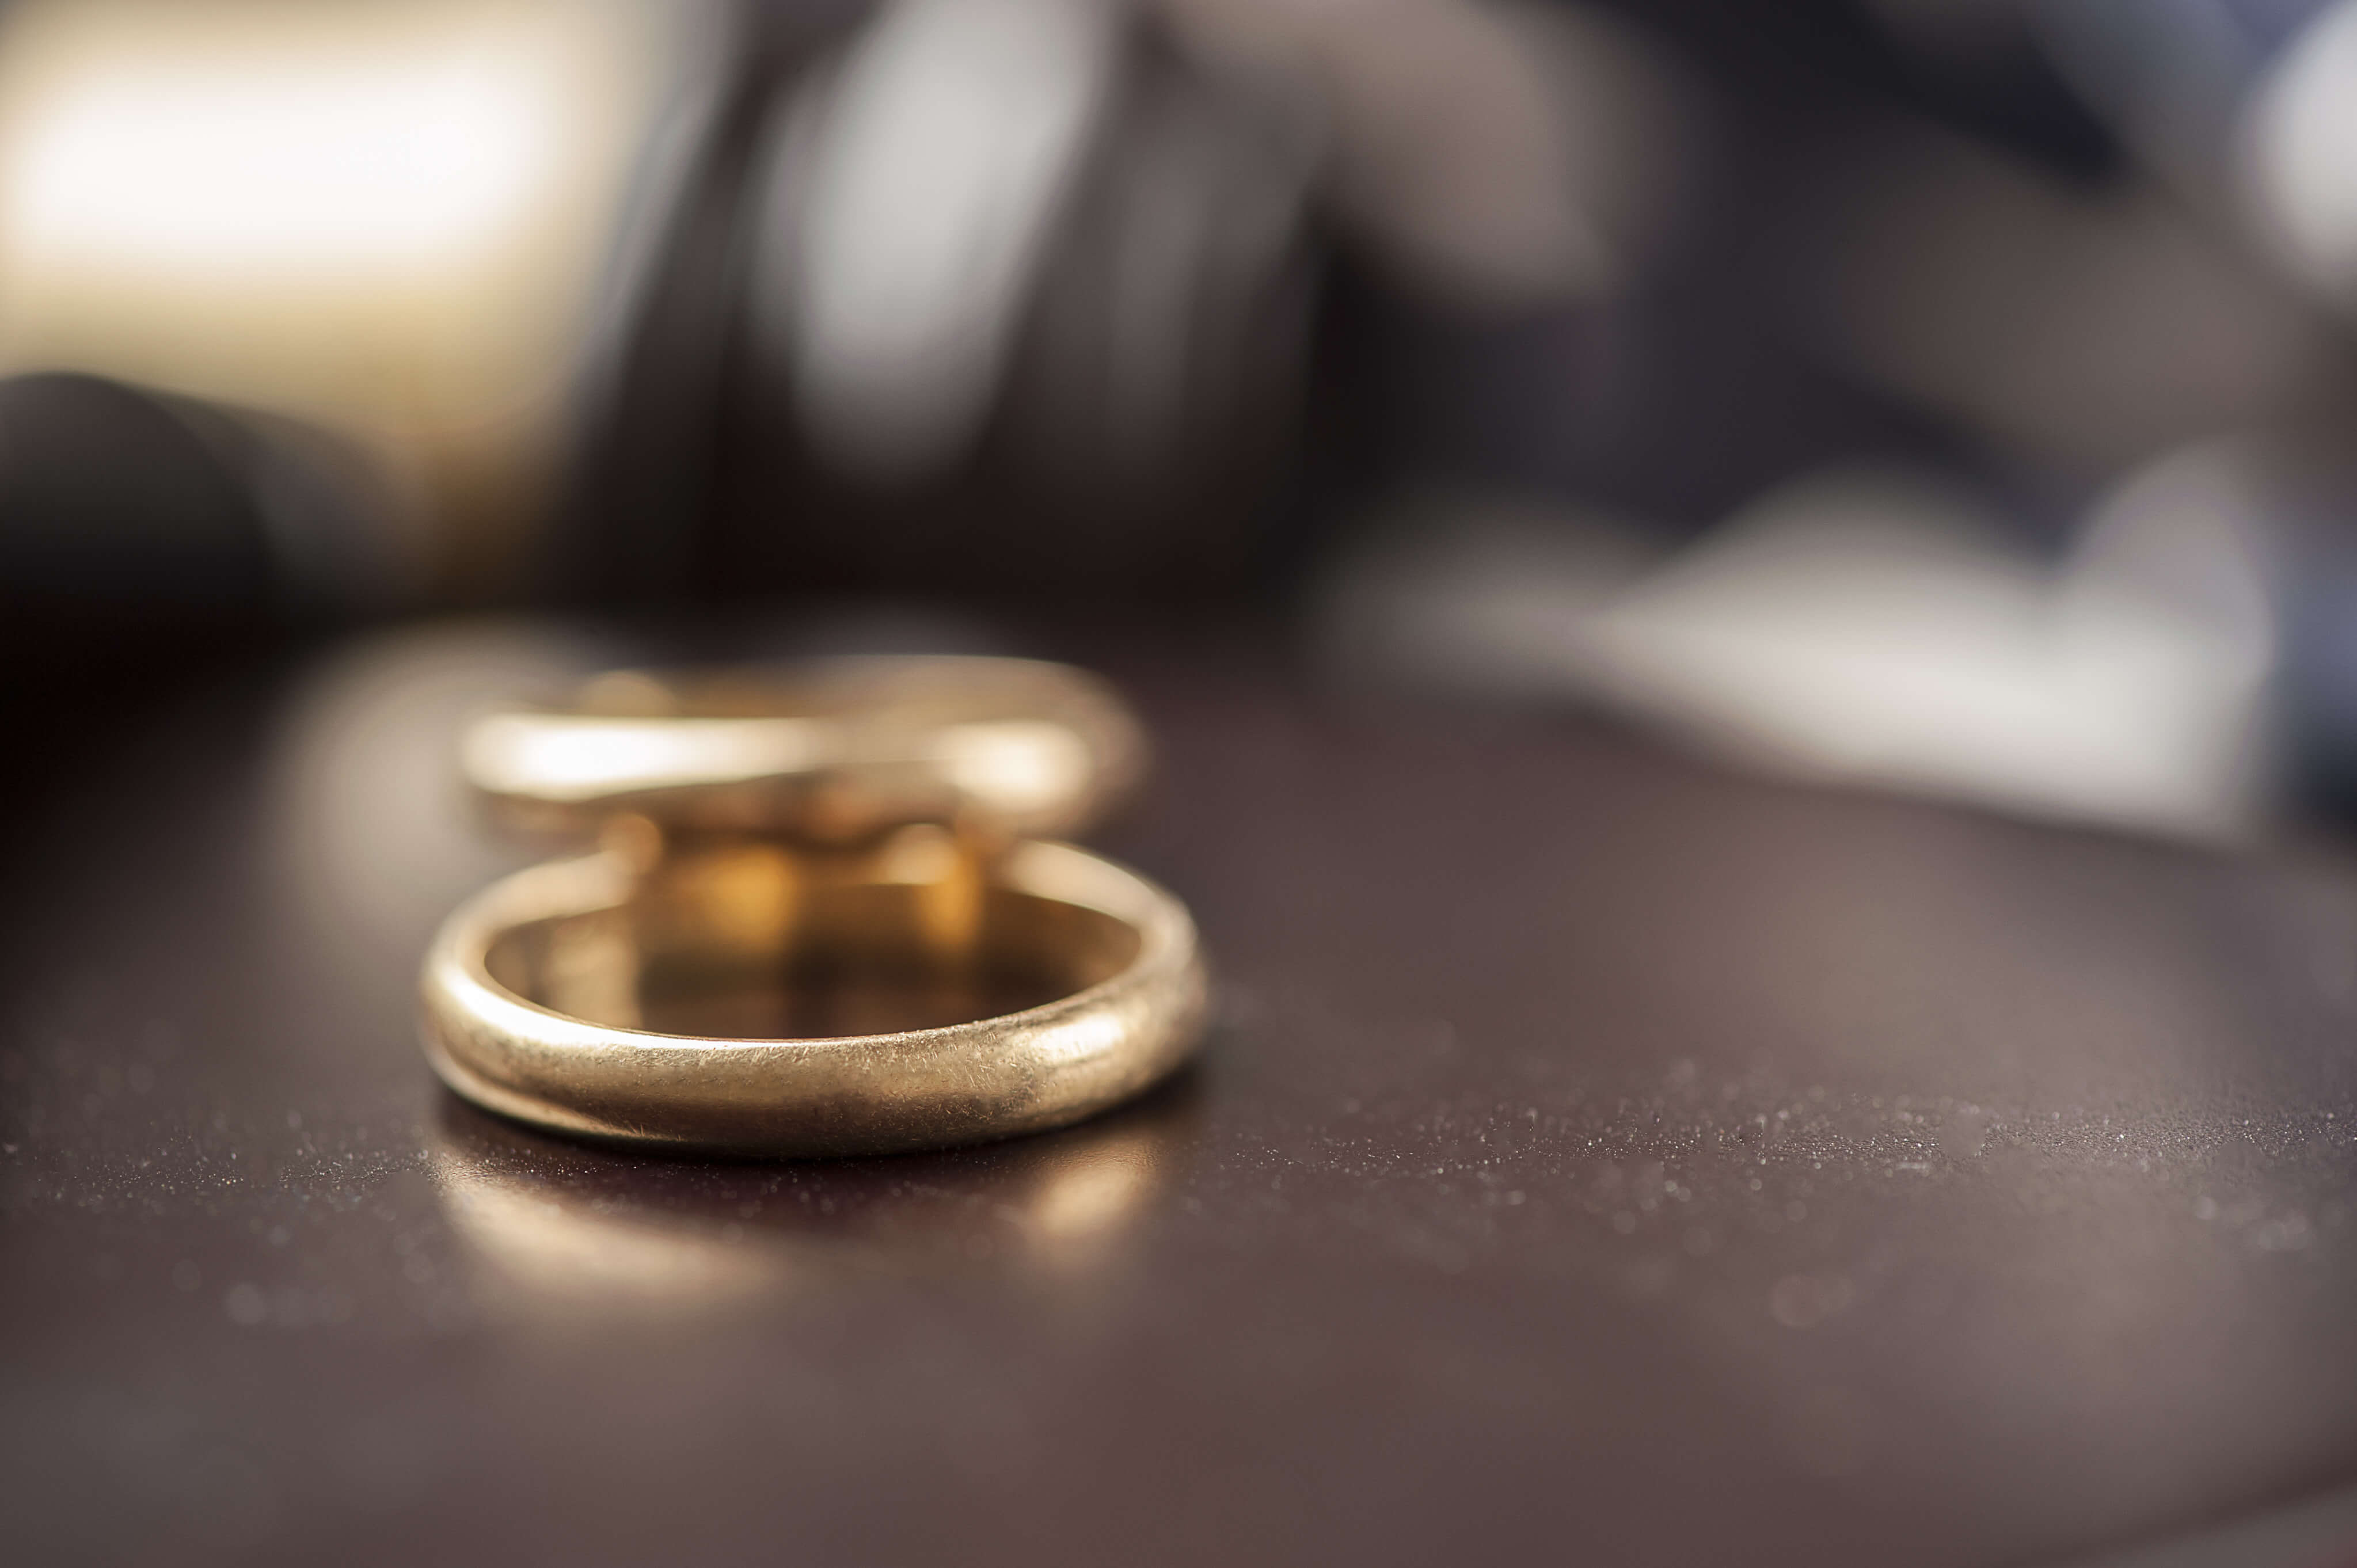 weddings rings placed on a desk at a divorce law firm on Long Island